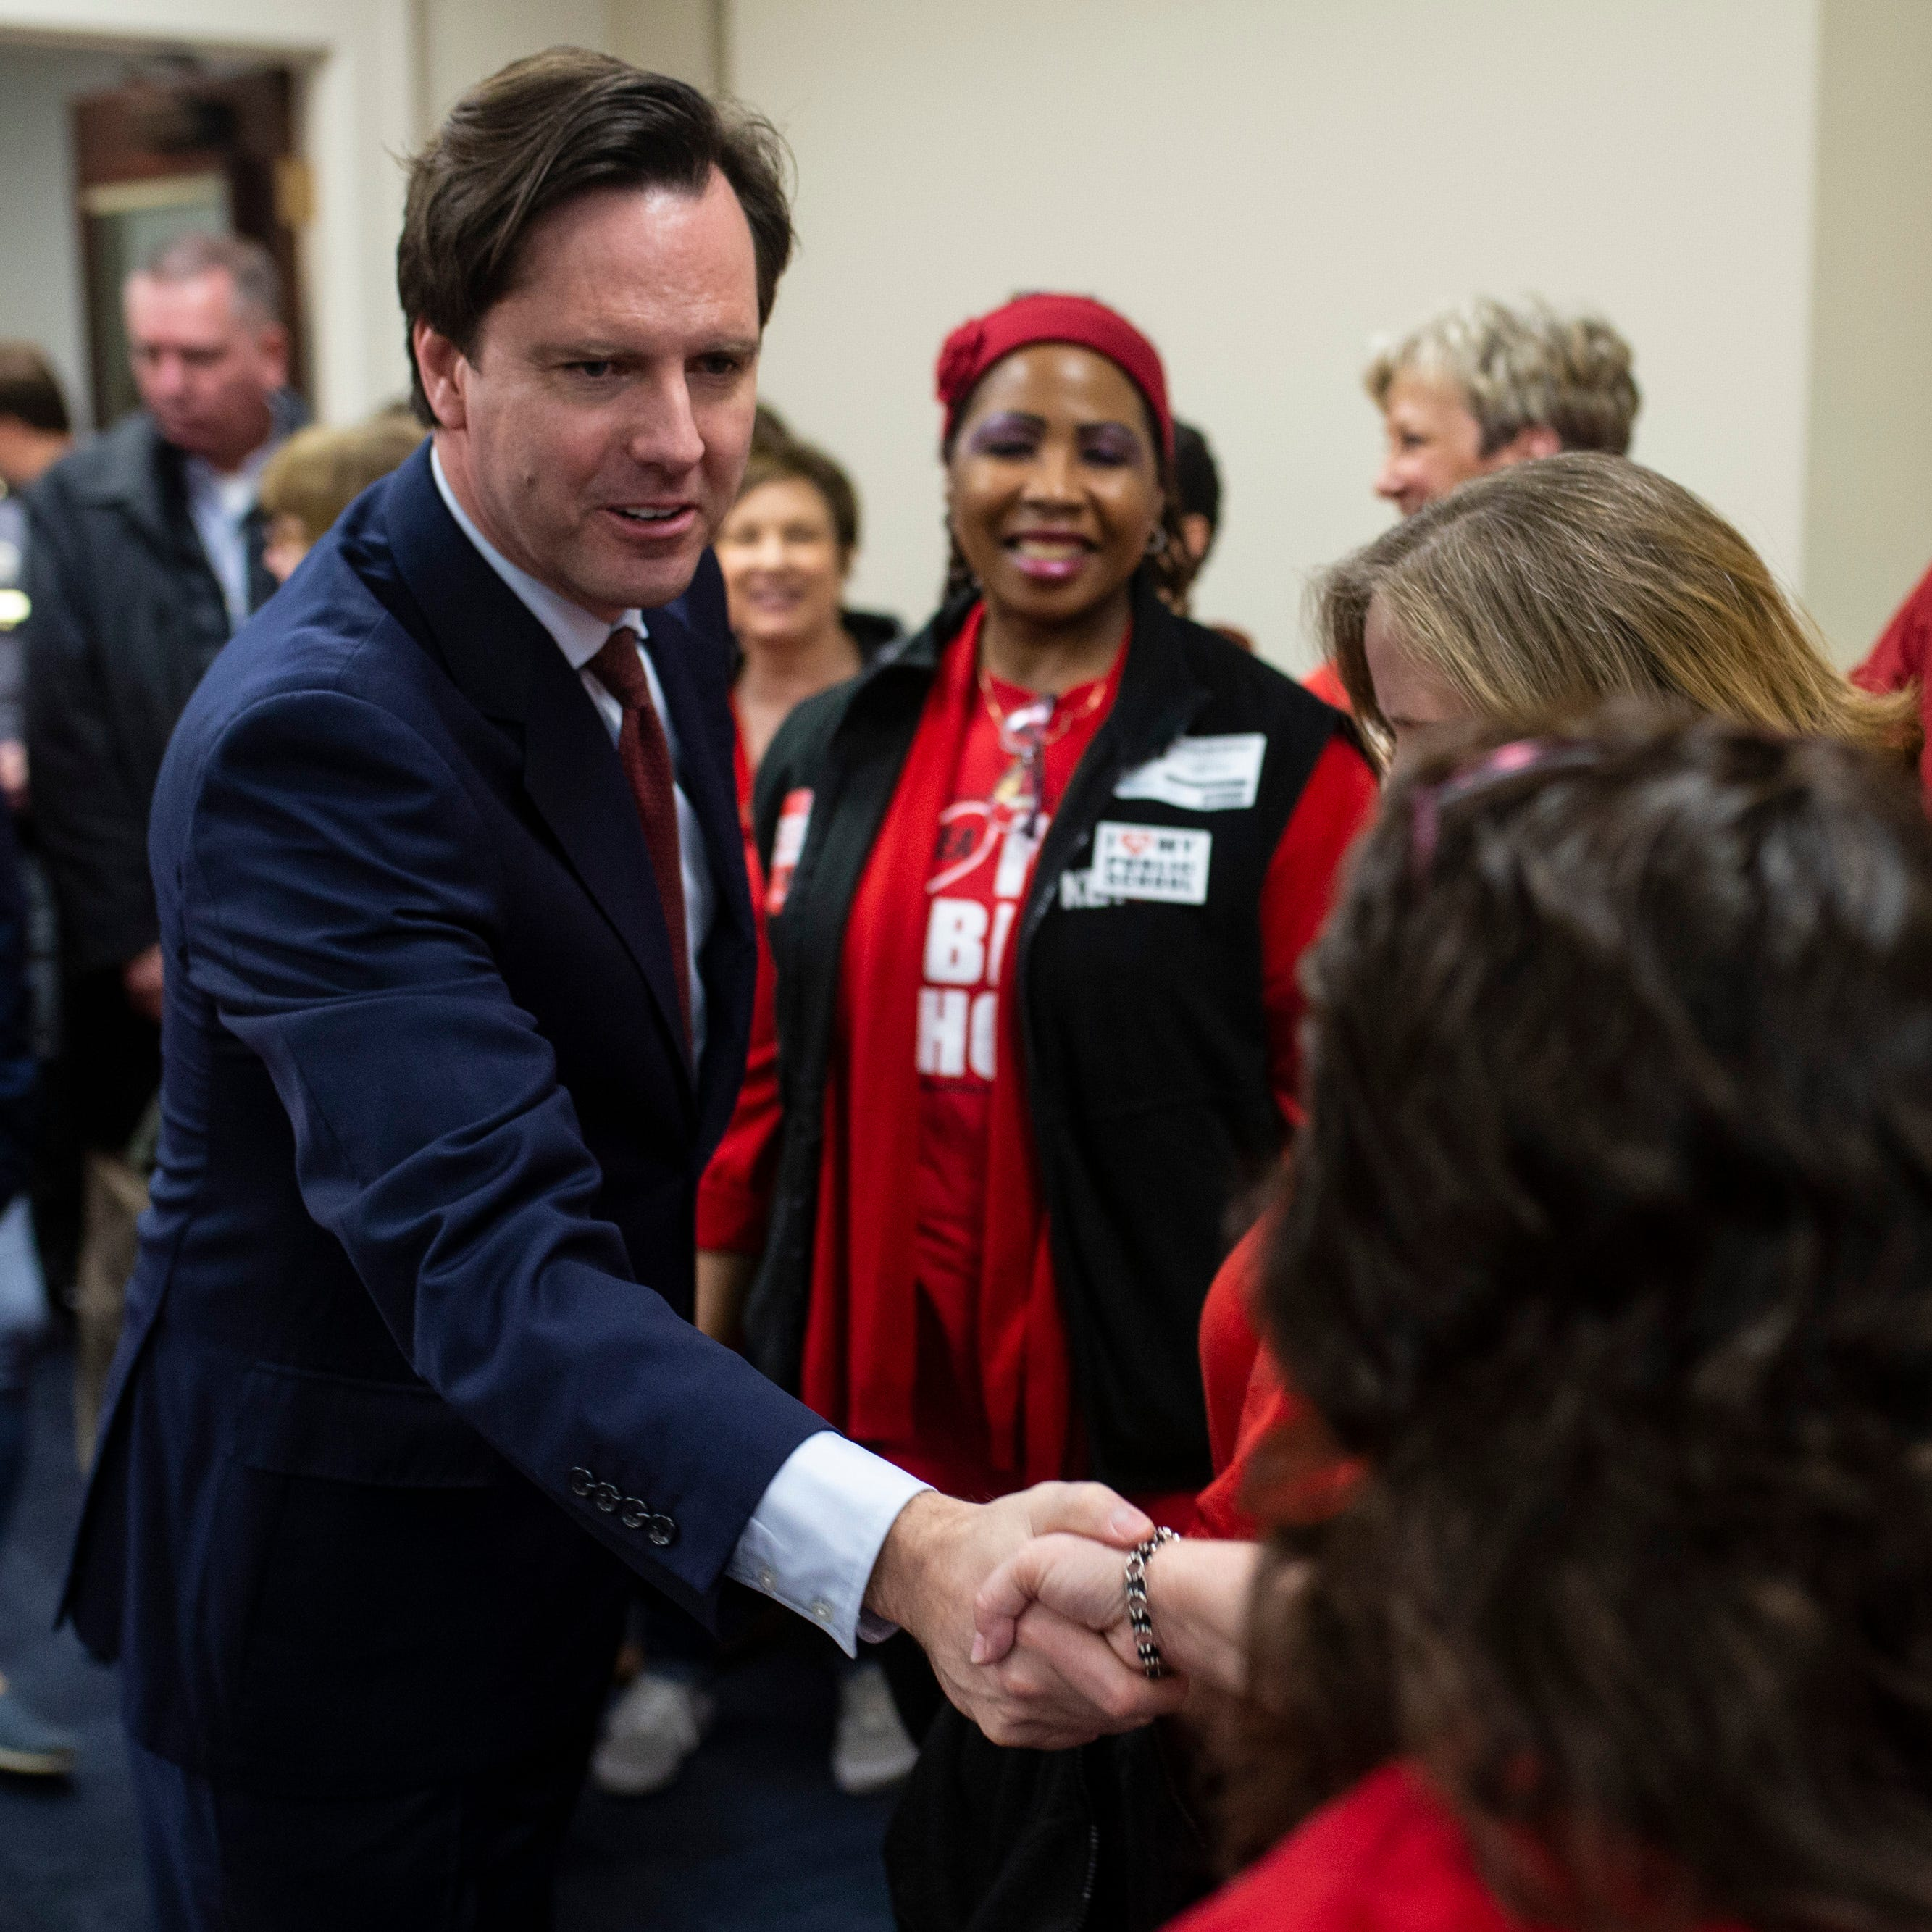 Governor candidate Adam Edelen shakes hands with Kentucky teachers before the hearing for House Bill 525 at the Kentucky Capitol on Thursday. Feb. 28, 2019